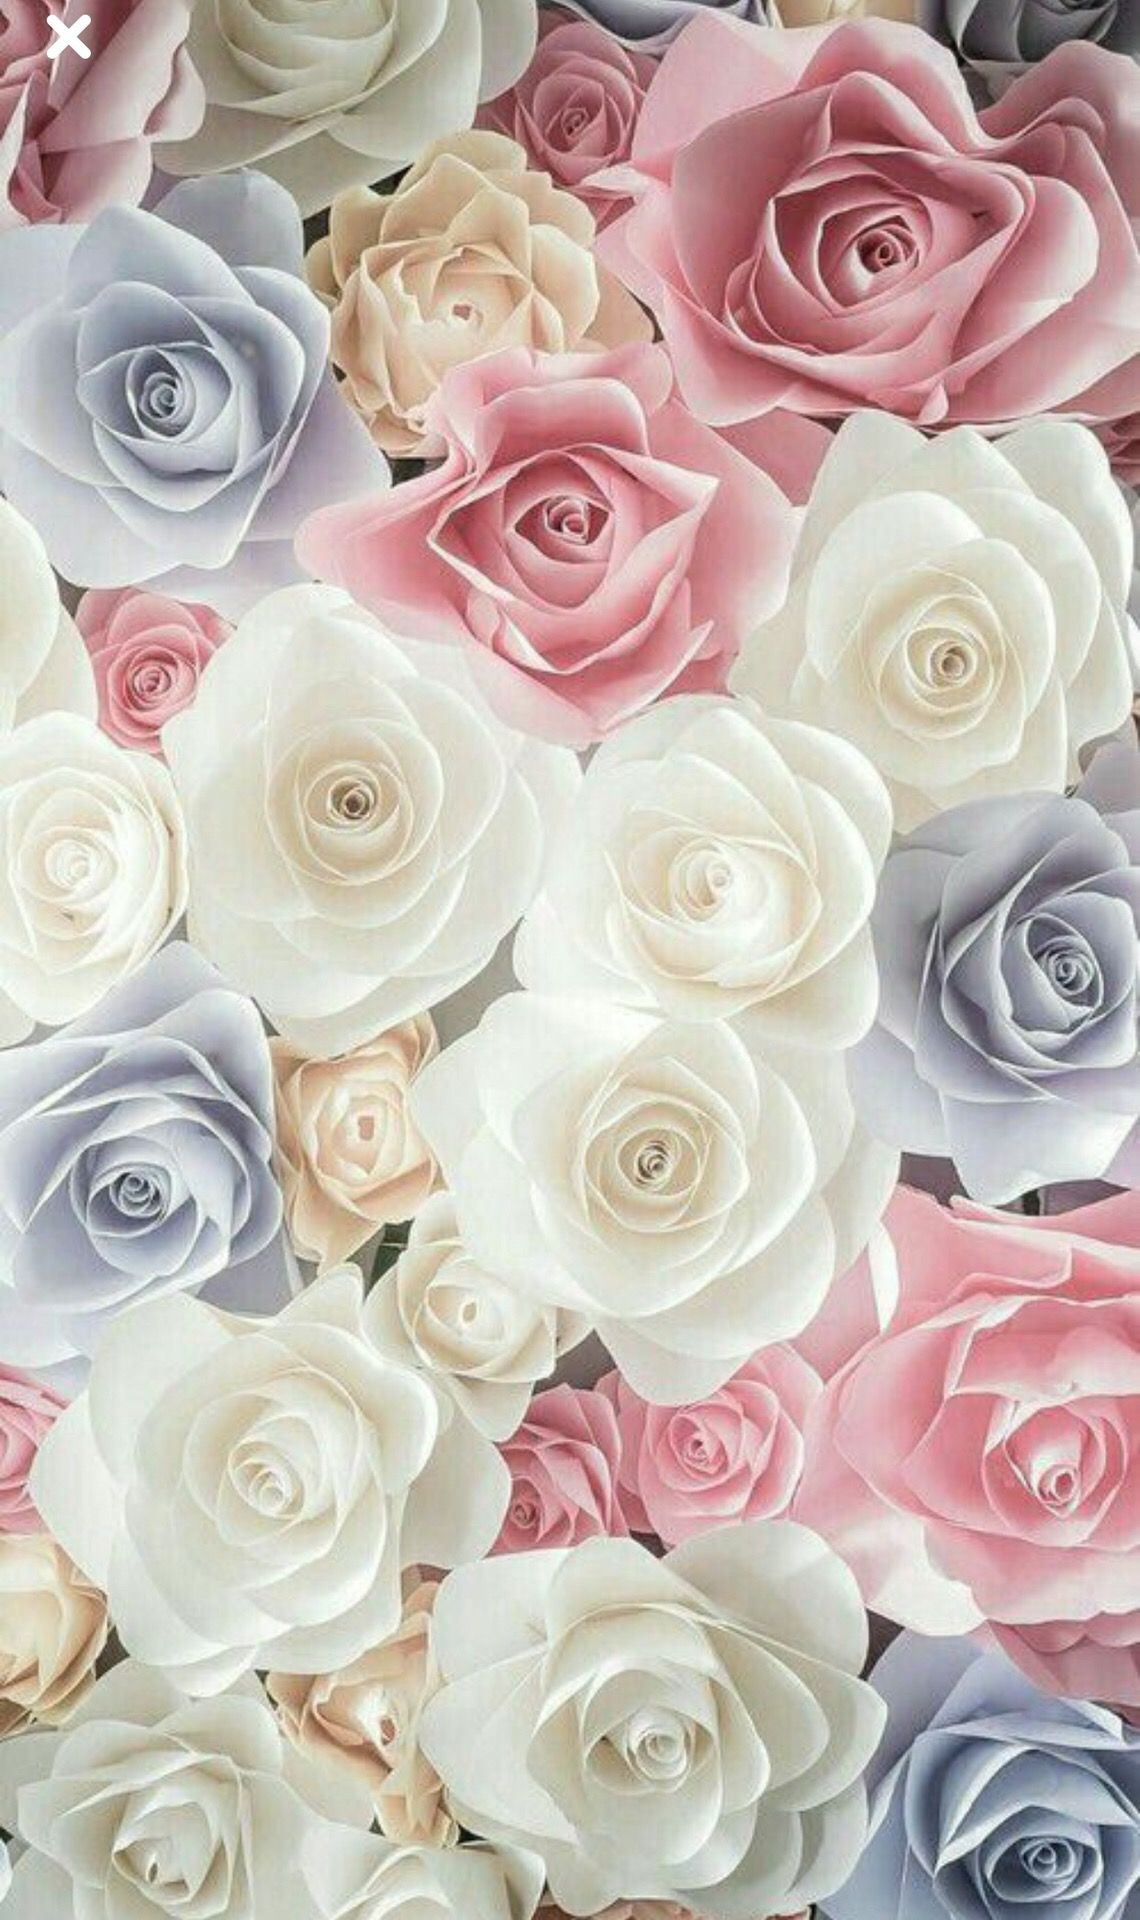 Pin By Linda Whitney On Roses Pinterest Wallpaper Flowers And Phone